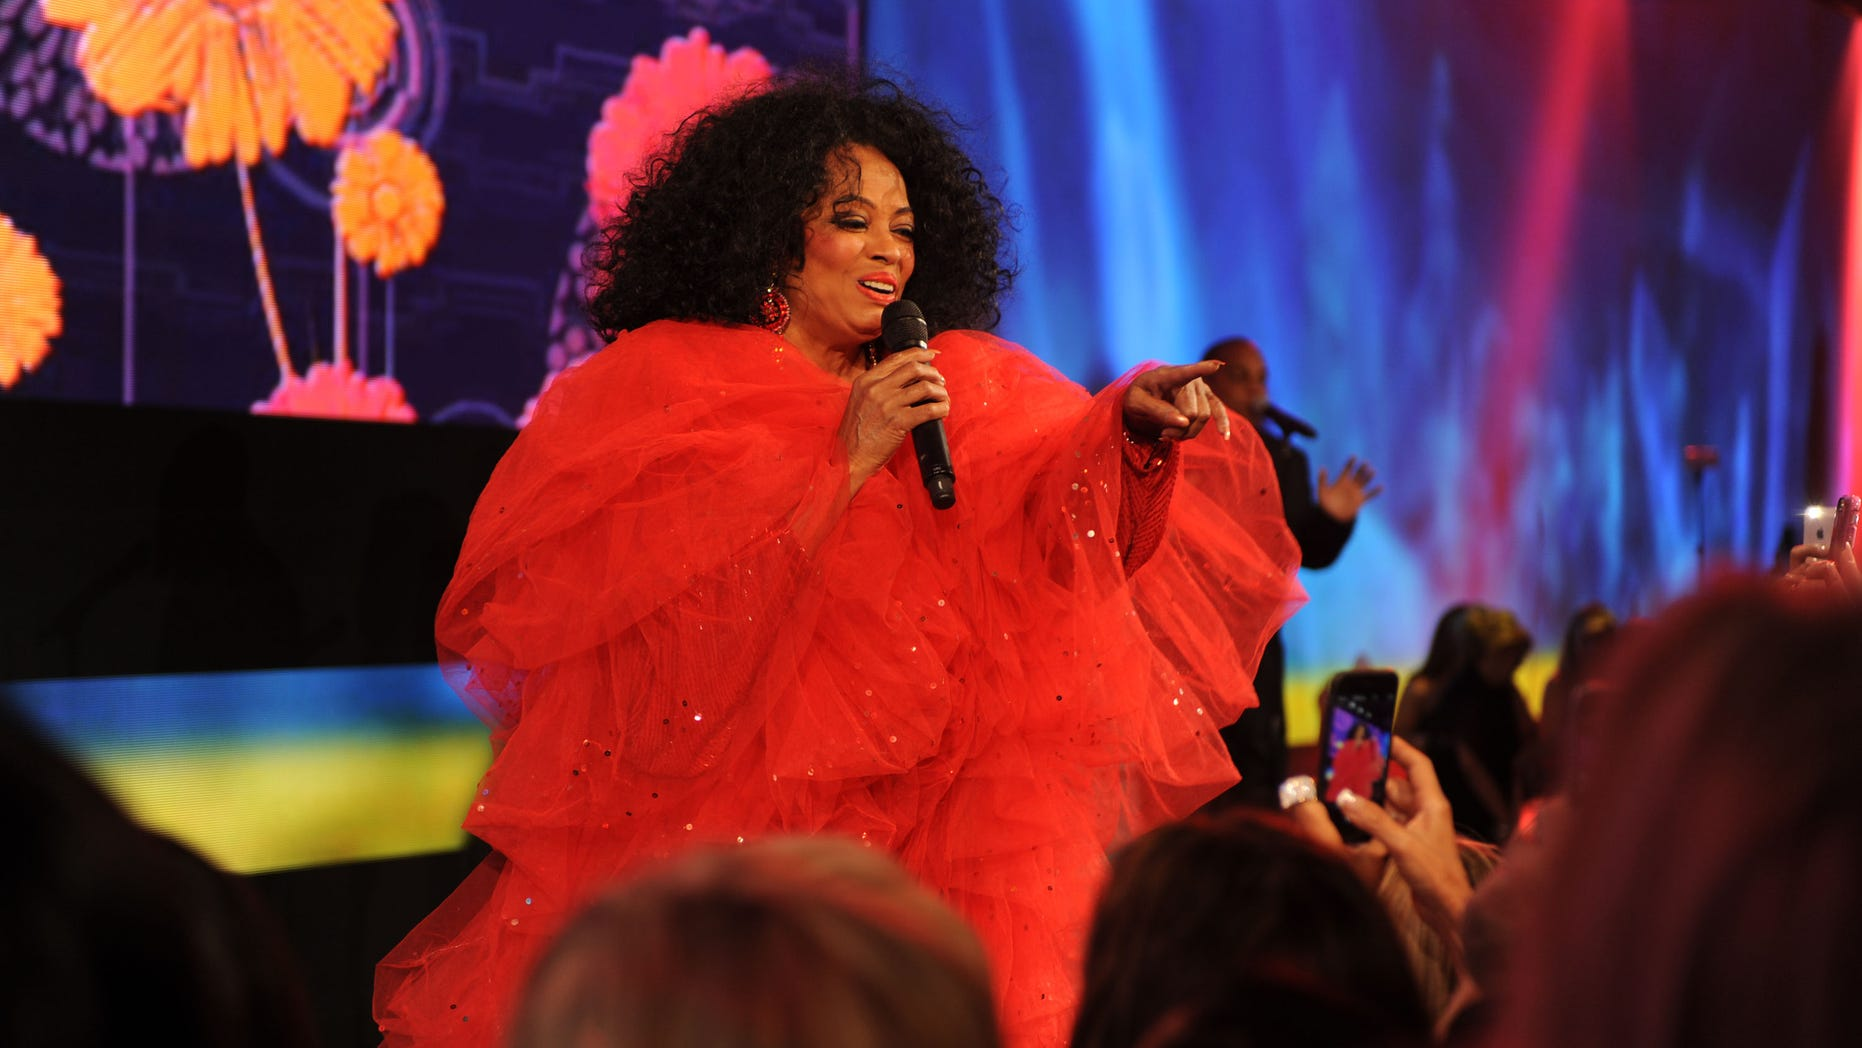 Diana Ross performs at the InterContinental Miami 20 year anniversary MAKE-A-WISH Ball on Nov. 1, 2014.